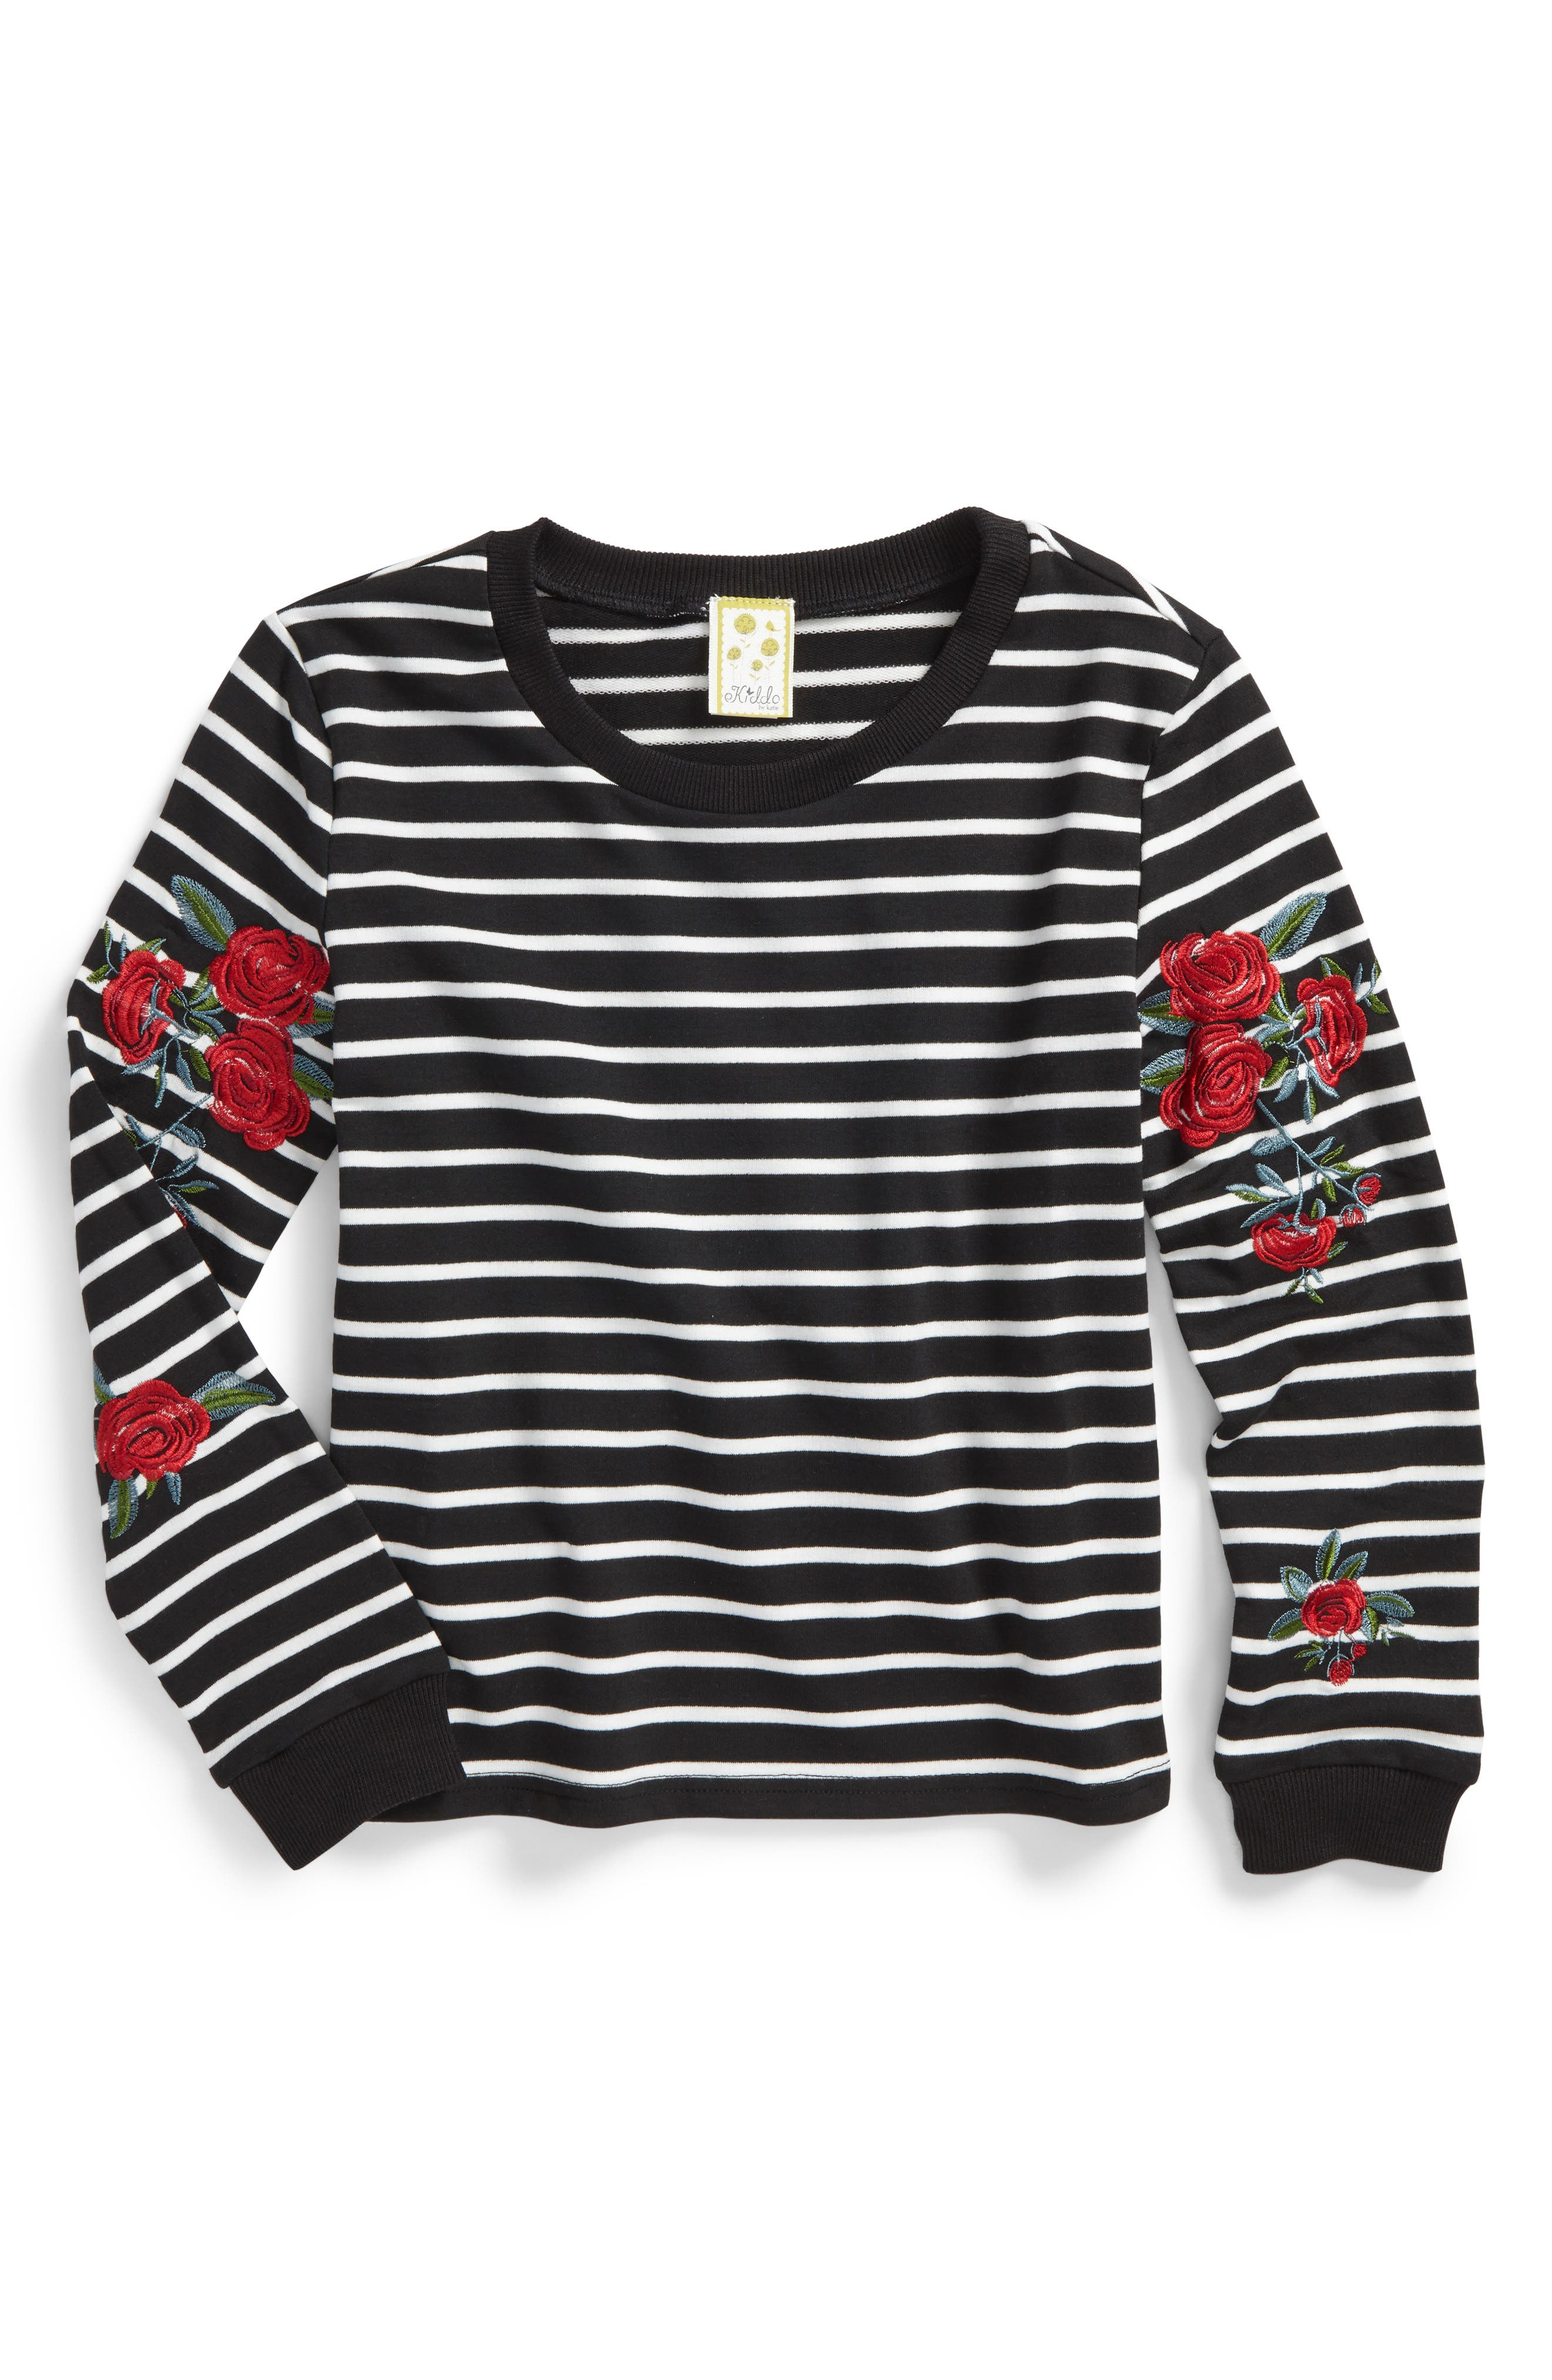 Embroidered Stripe Sweatshirt,                         Main,                         color, Black/ White